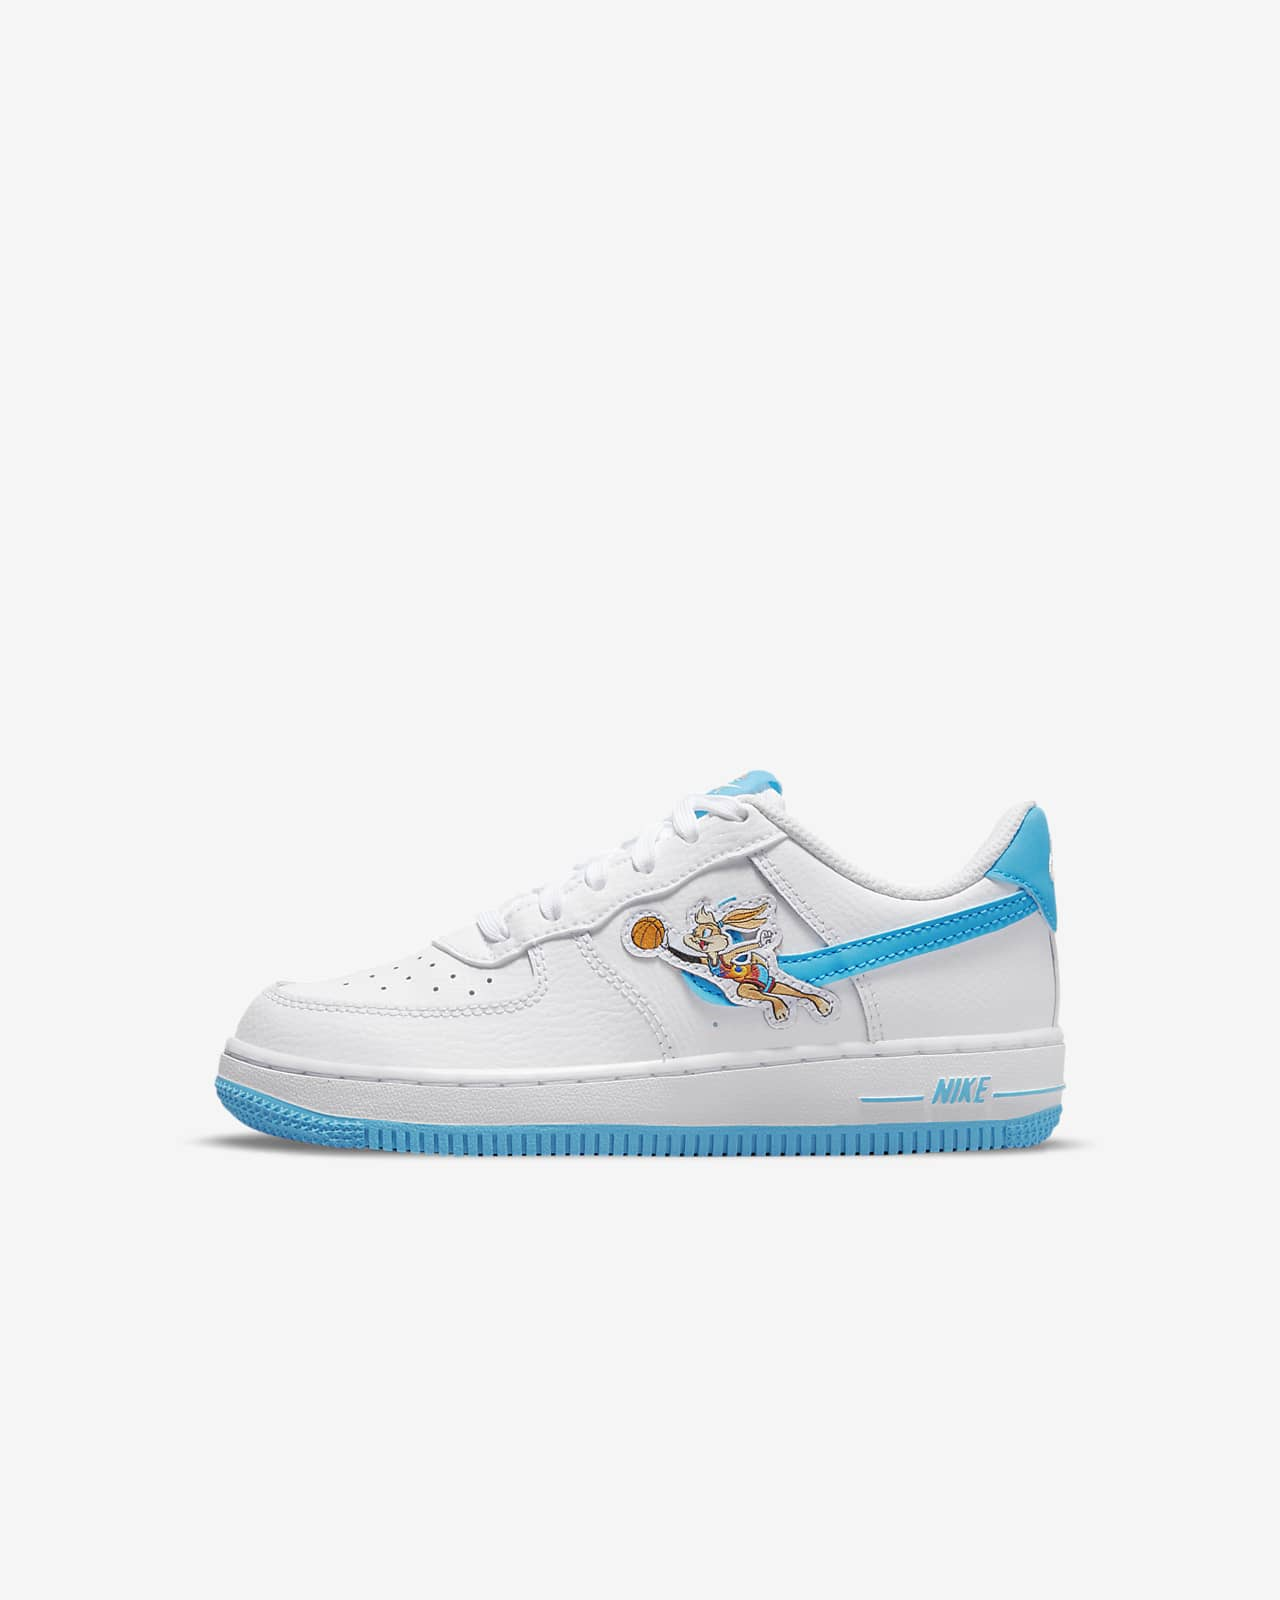 Nike Force 1 '06 x Space Jam: A New Legacy Little Kids' Shoes